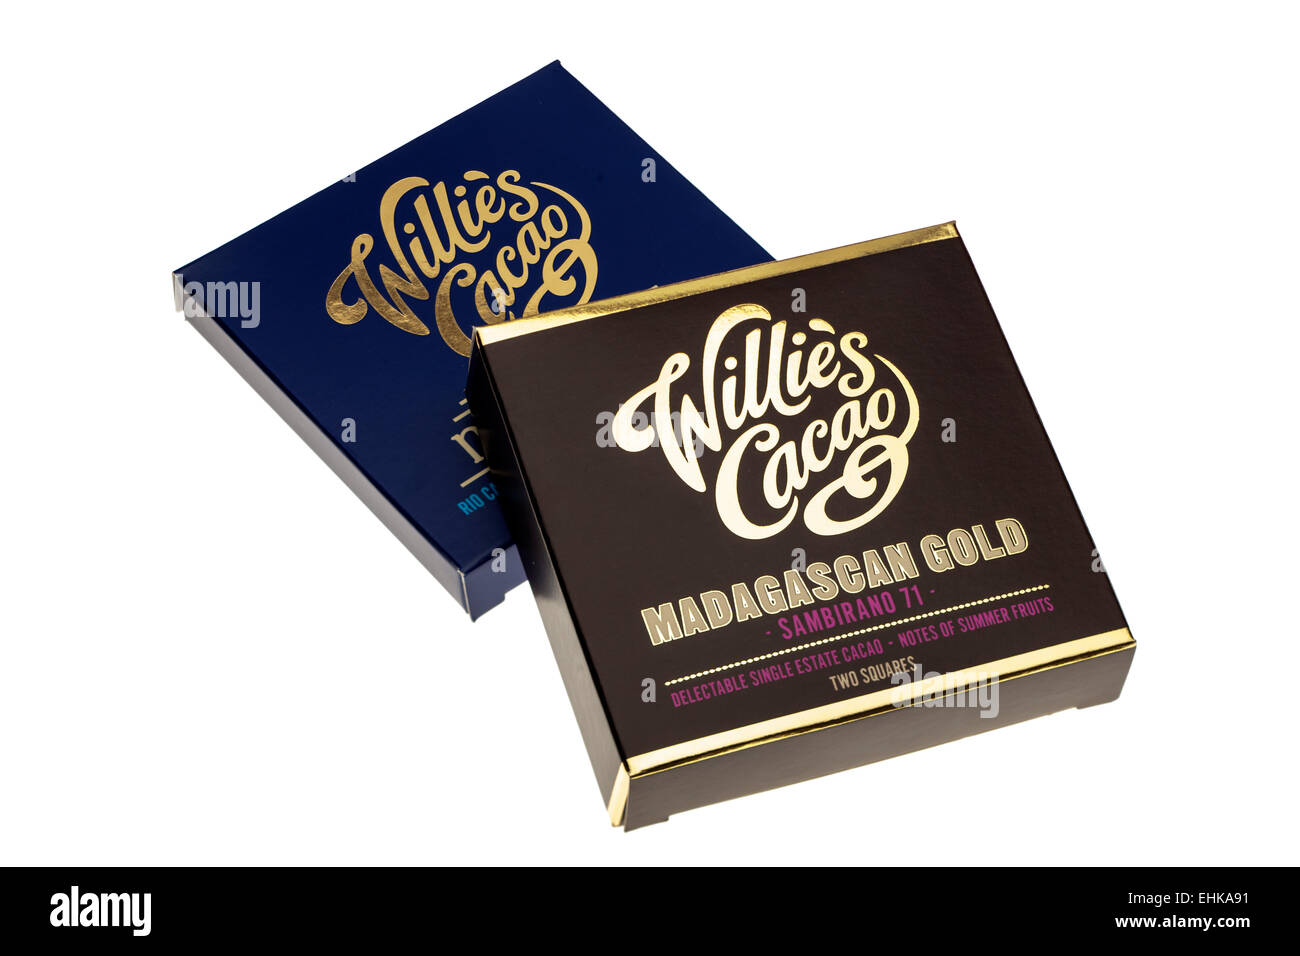 Two packs of Willies chocolate bars Madagascan Gold and Milk of the Gods - Stock Image